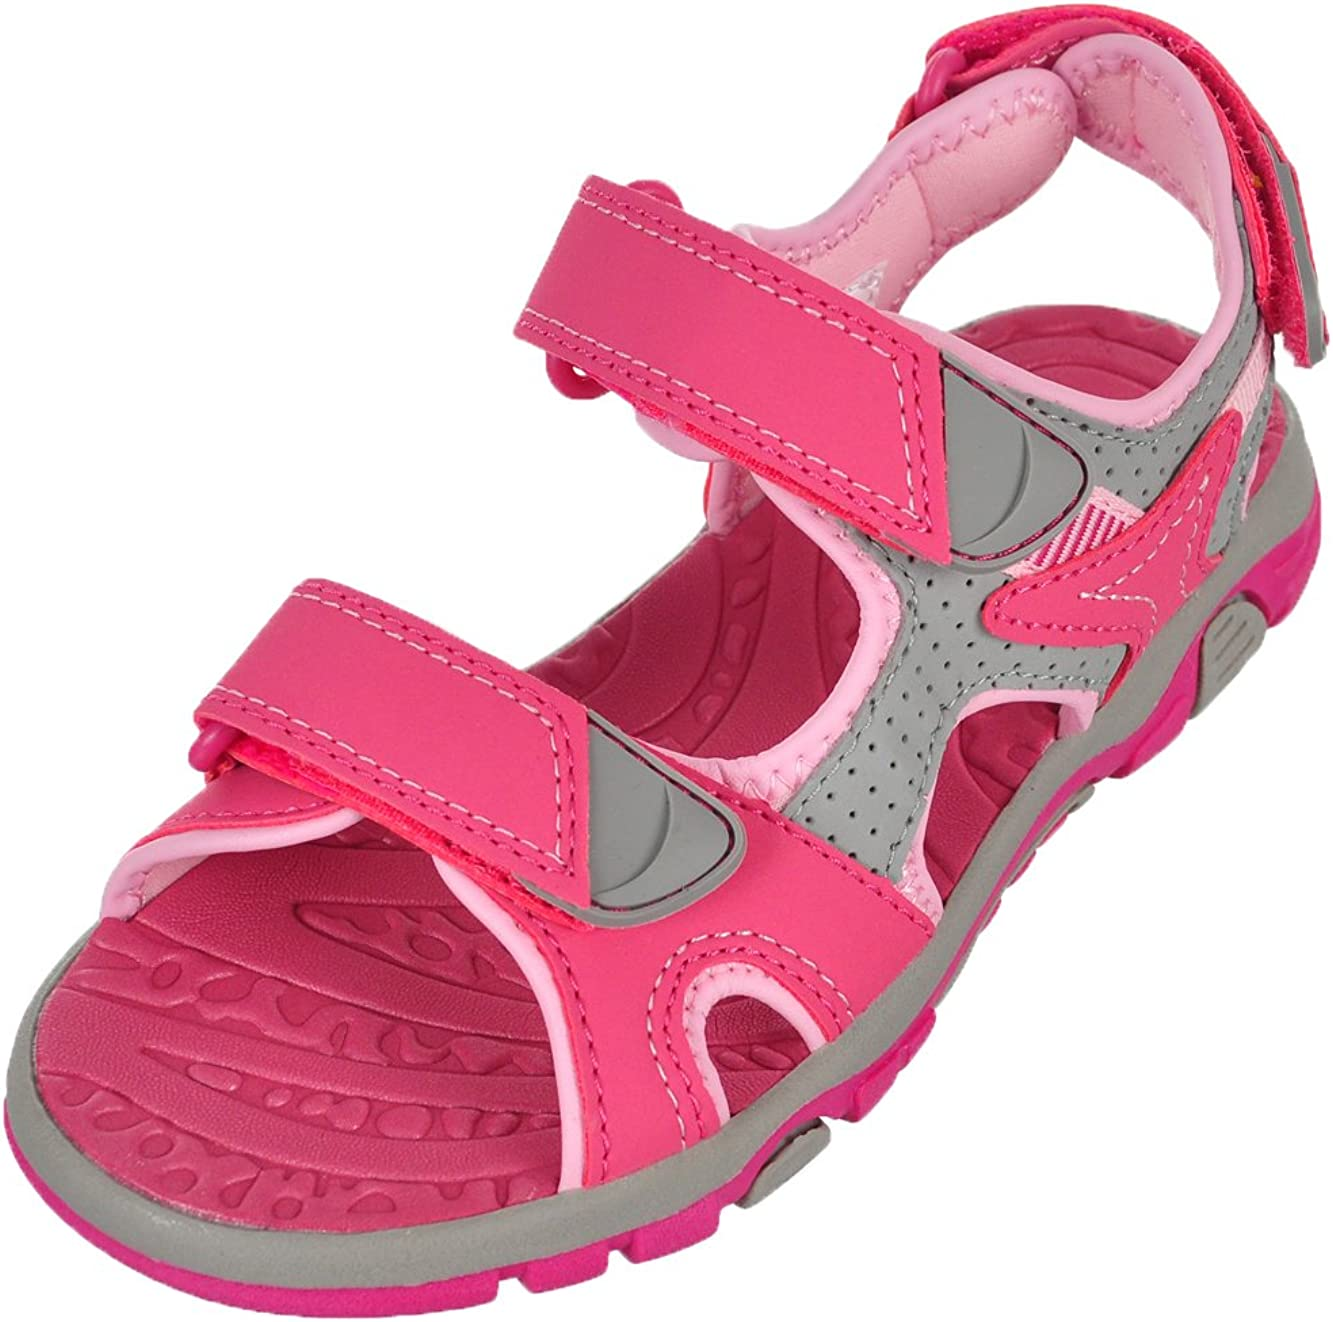 Khombu Kids' Girls Super beauty product restock quality top River Sandal Pink Su Outlet ☆ Free Shipping Hiking - Casual Walking